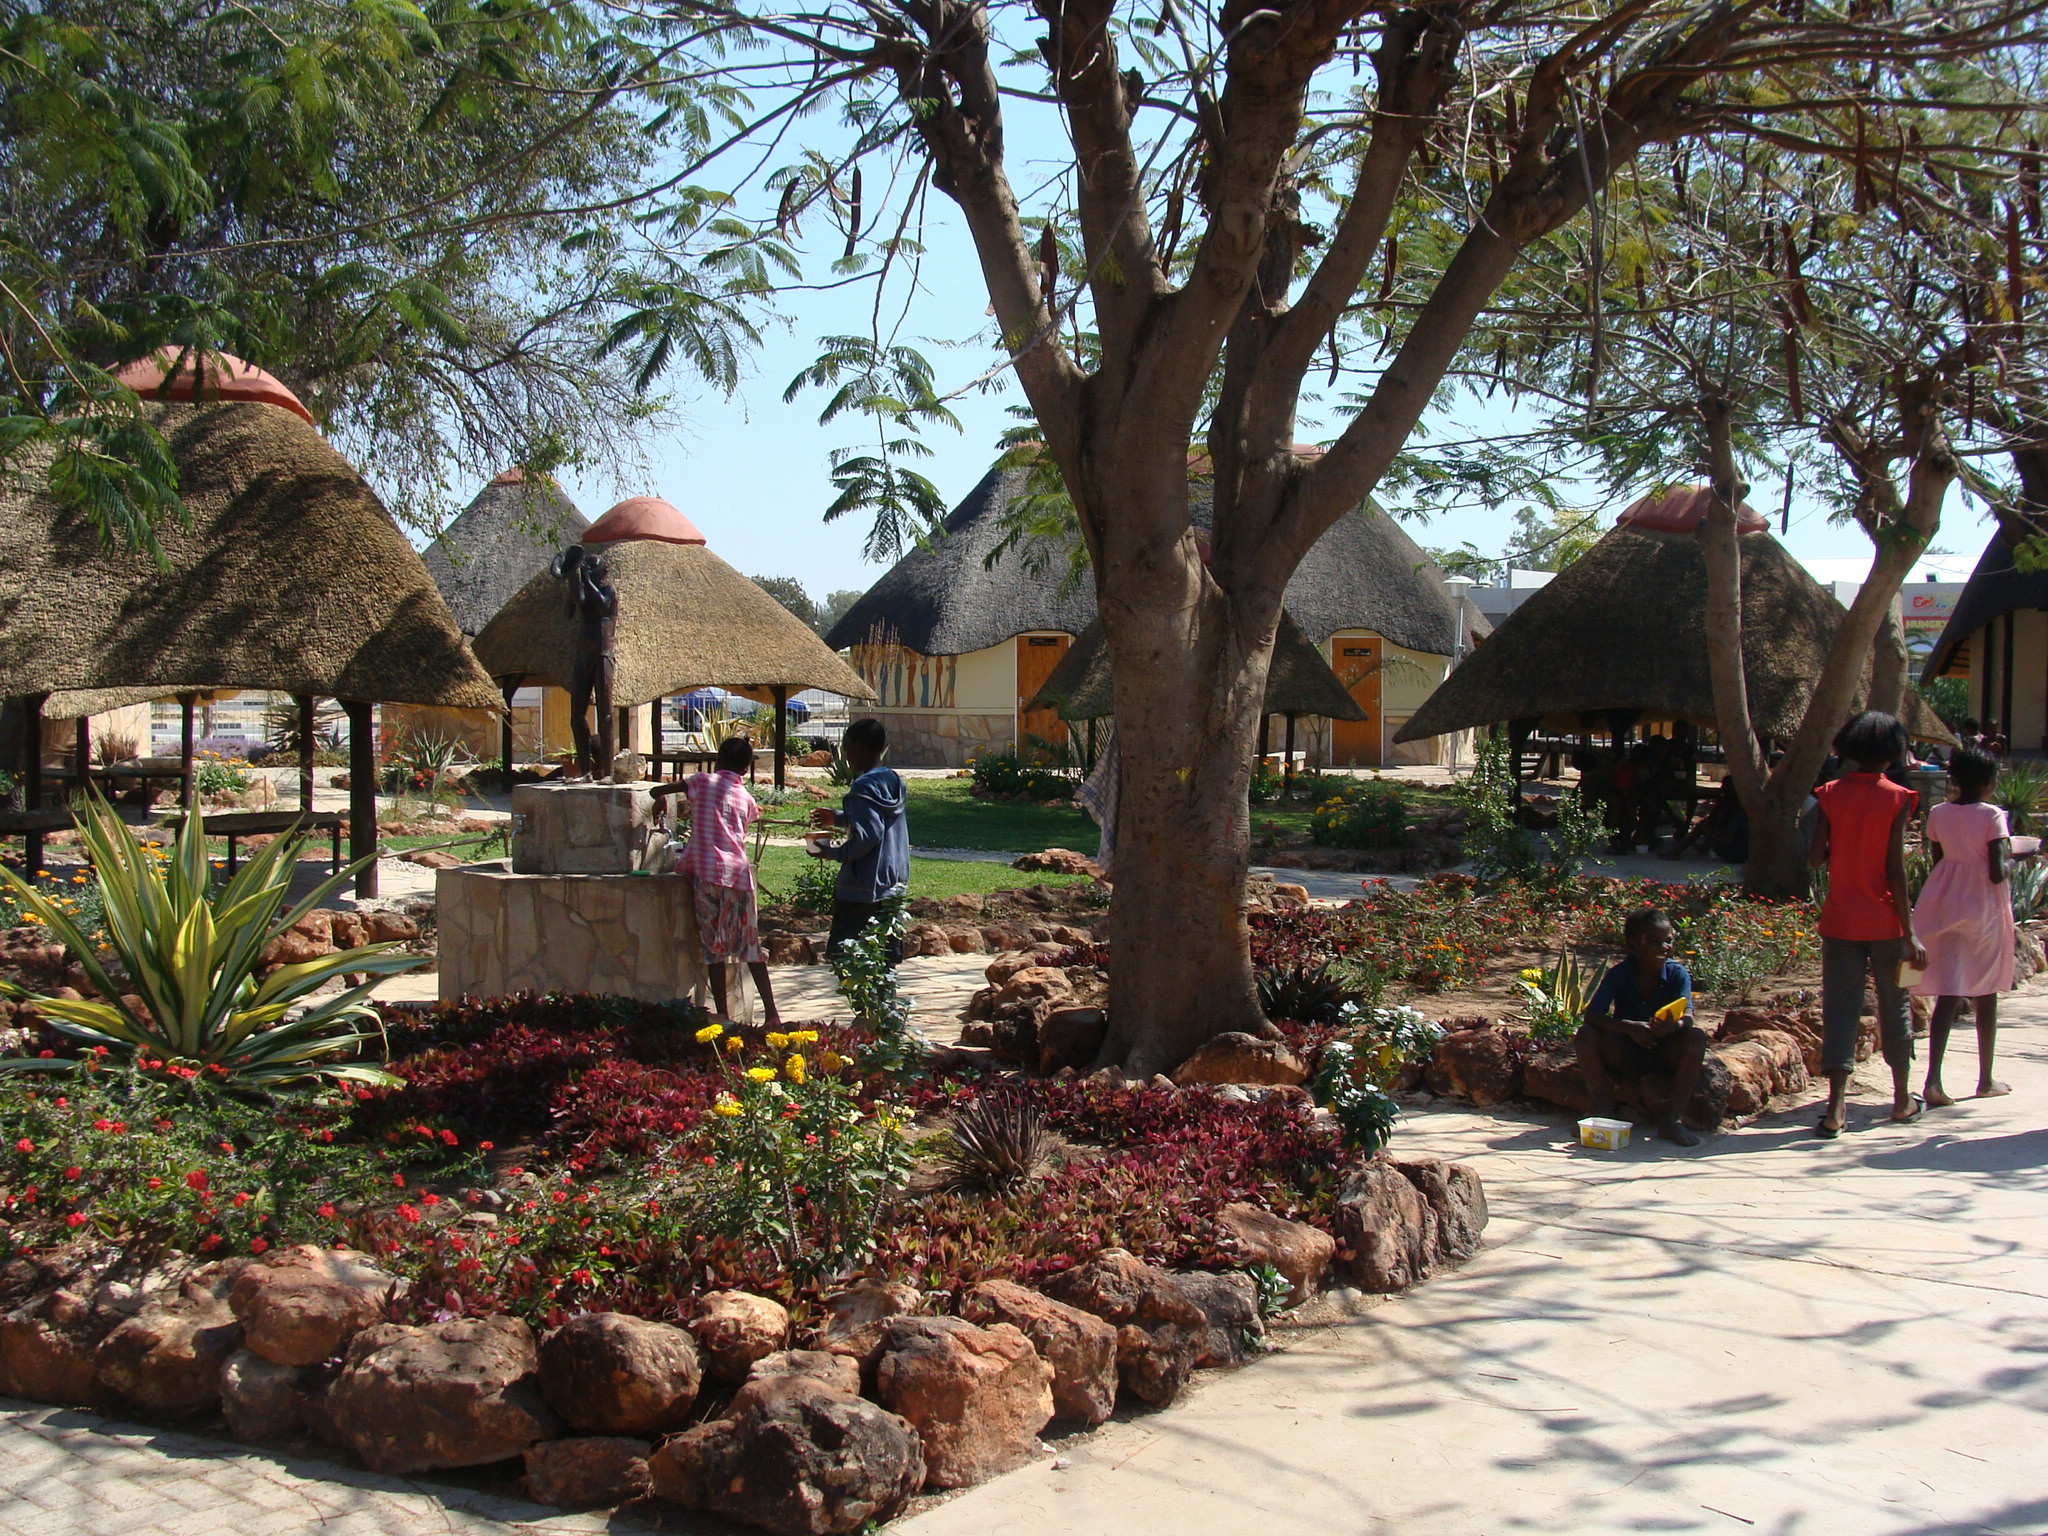 Tsumeb Namibia  city pictures gallery : Arts Performance Centre, Tsumeb Namibia | Baobab Guides